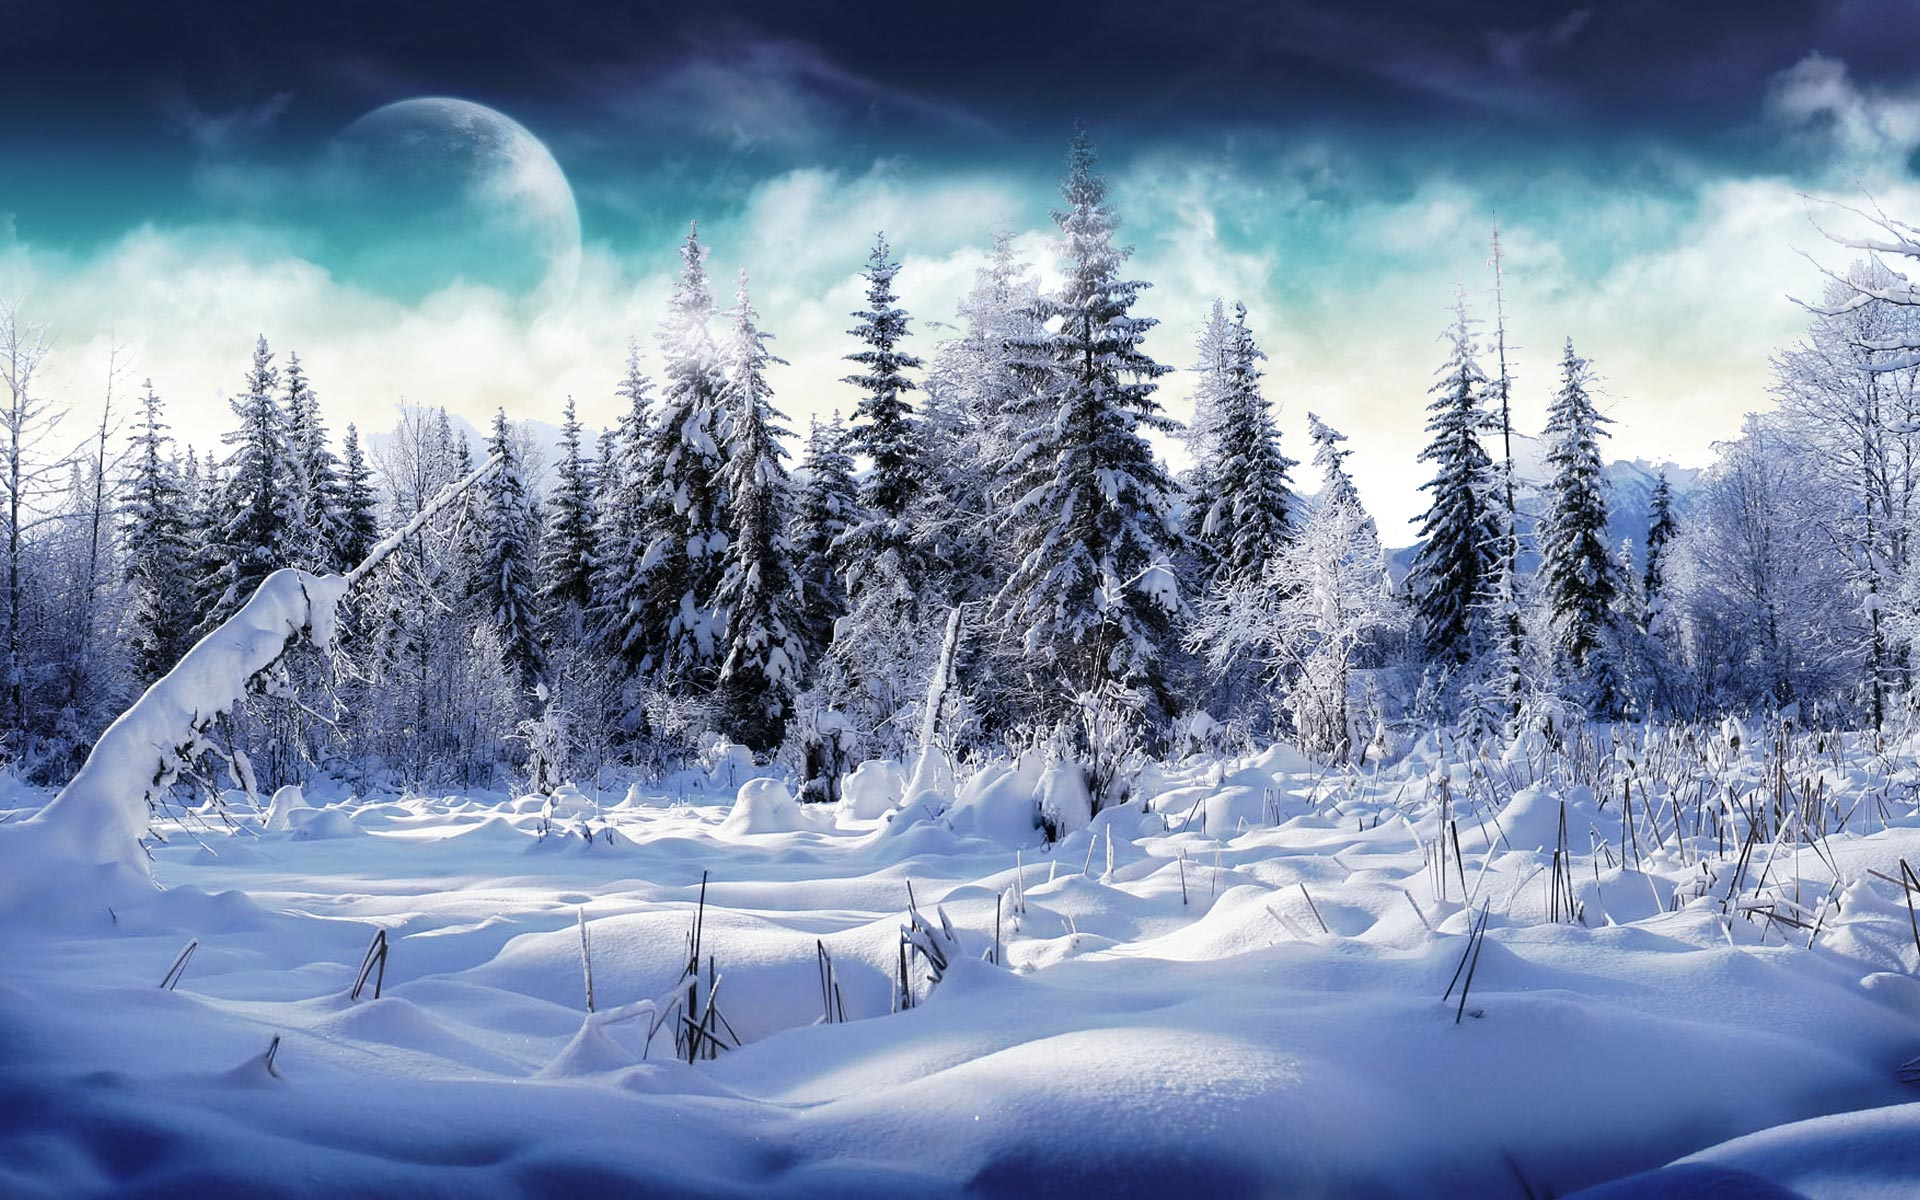 Winter Snowy forest 1920x1200 hd wallpaper High Definition Wallpapers 1920x1200